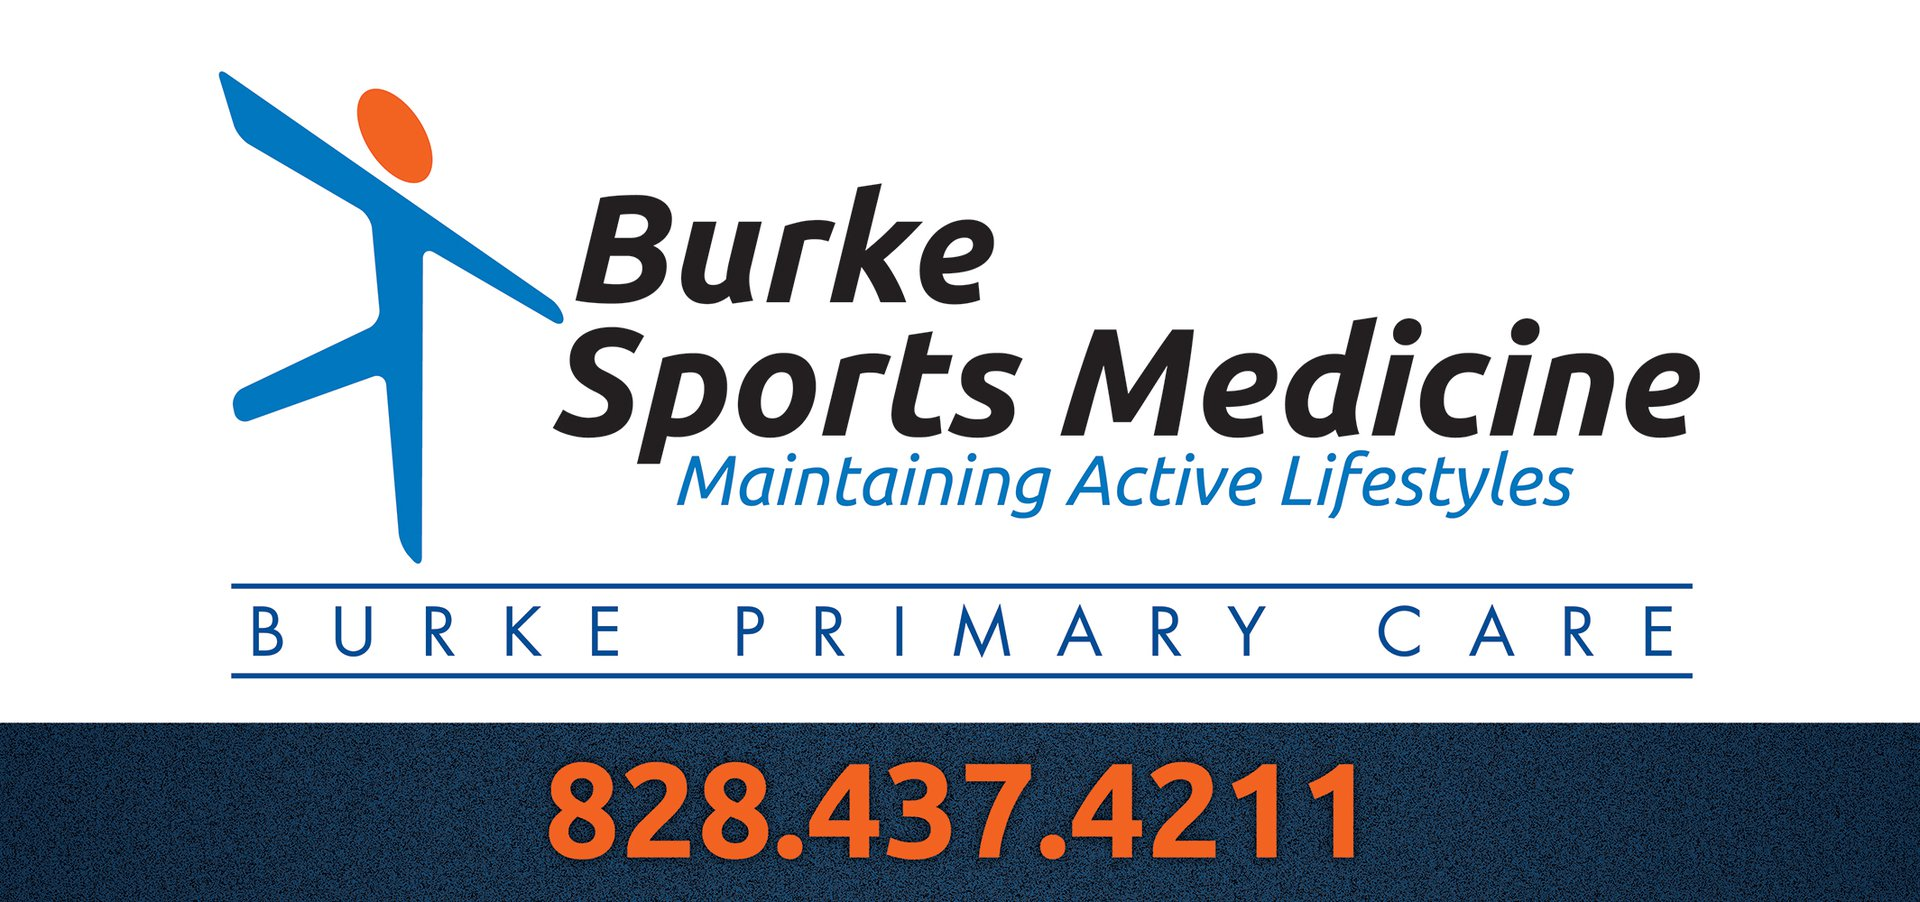 Burke Primary Care billboard